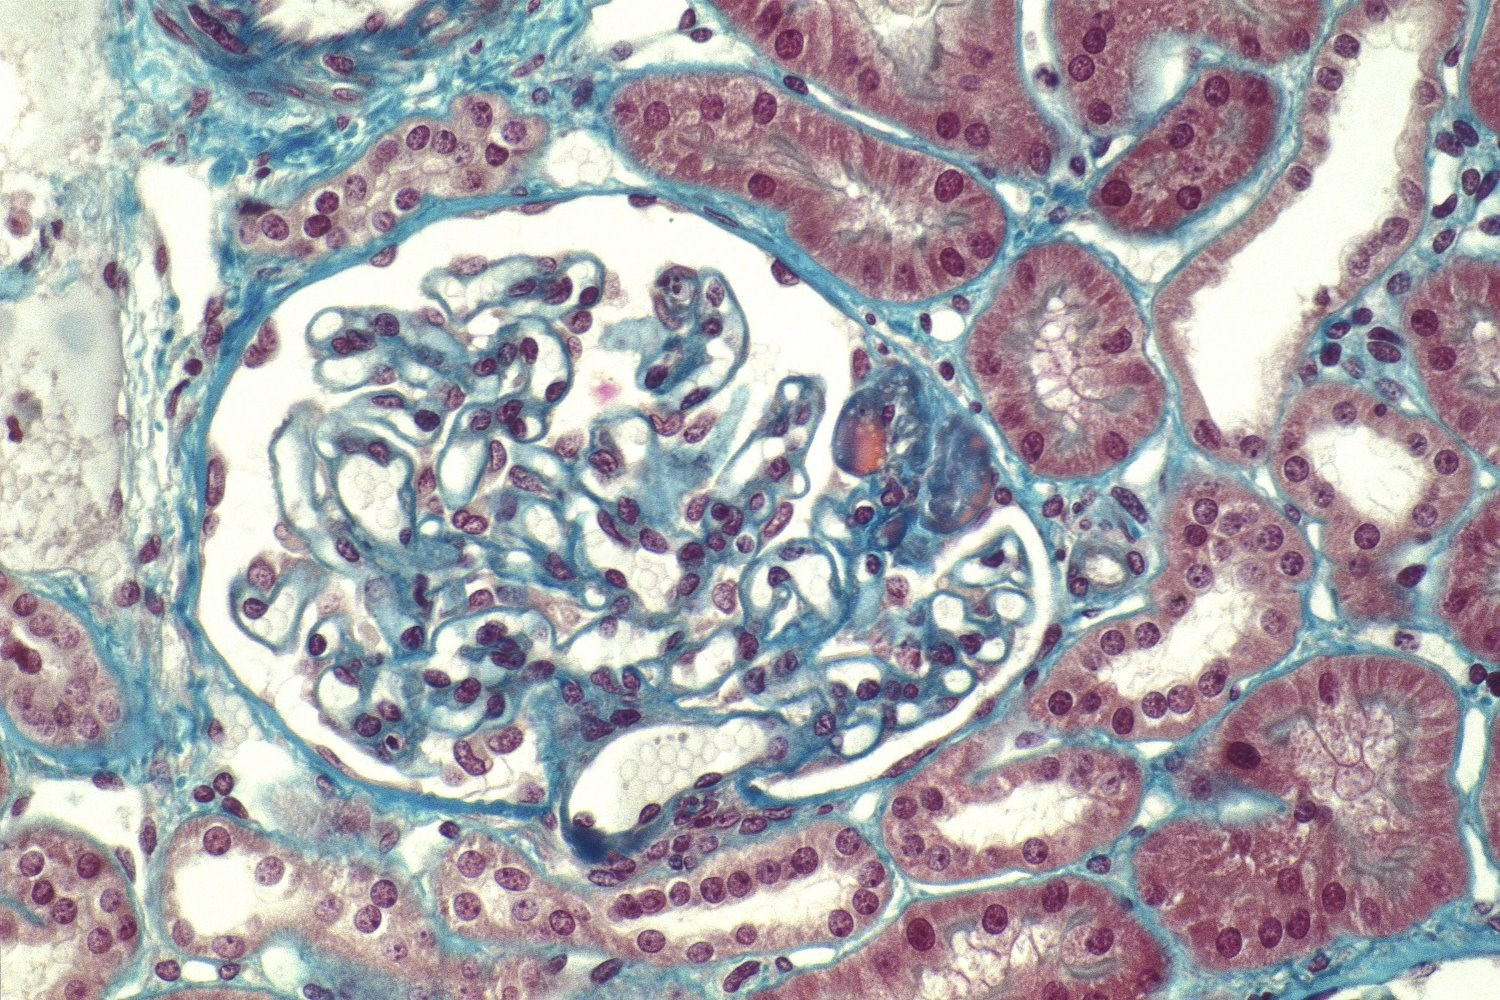 Focal segmental glomerulosclerosis results in fibrosis and scarring in the glomerulus. (c) Prof. J.L. Kemeny  MEDICALIMAGES.COM/ISM